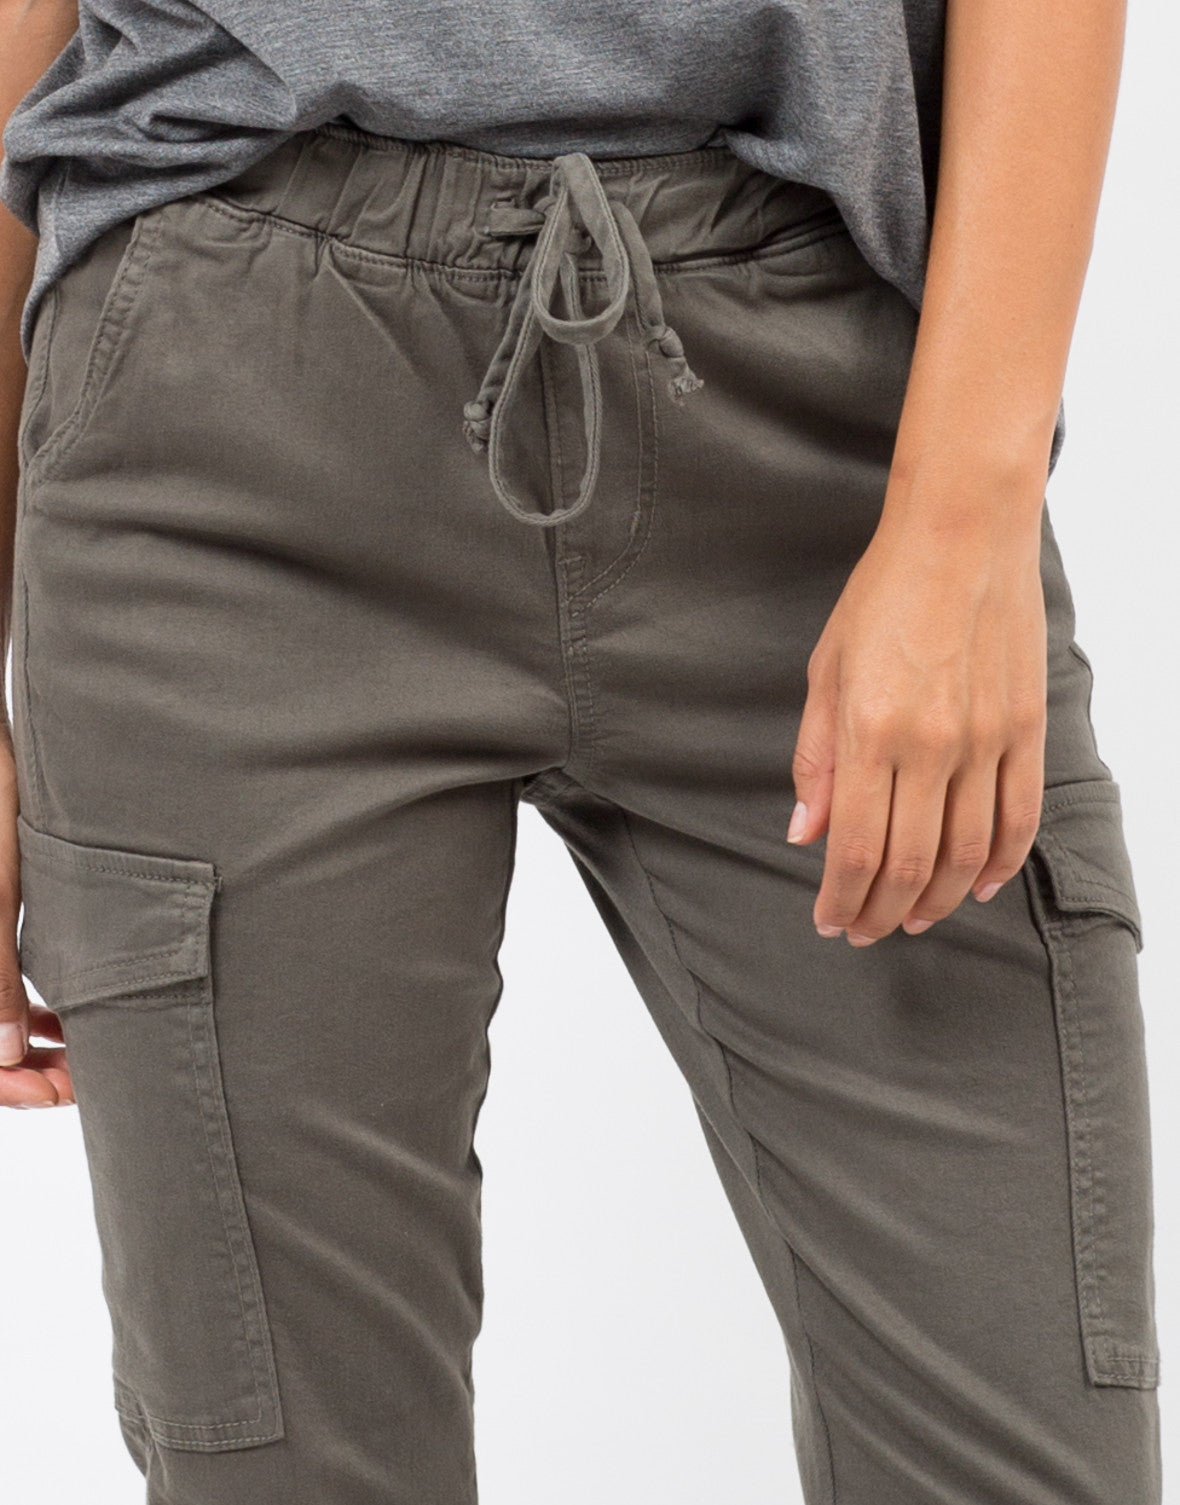 Detail of Stretchy Cargo Pants